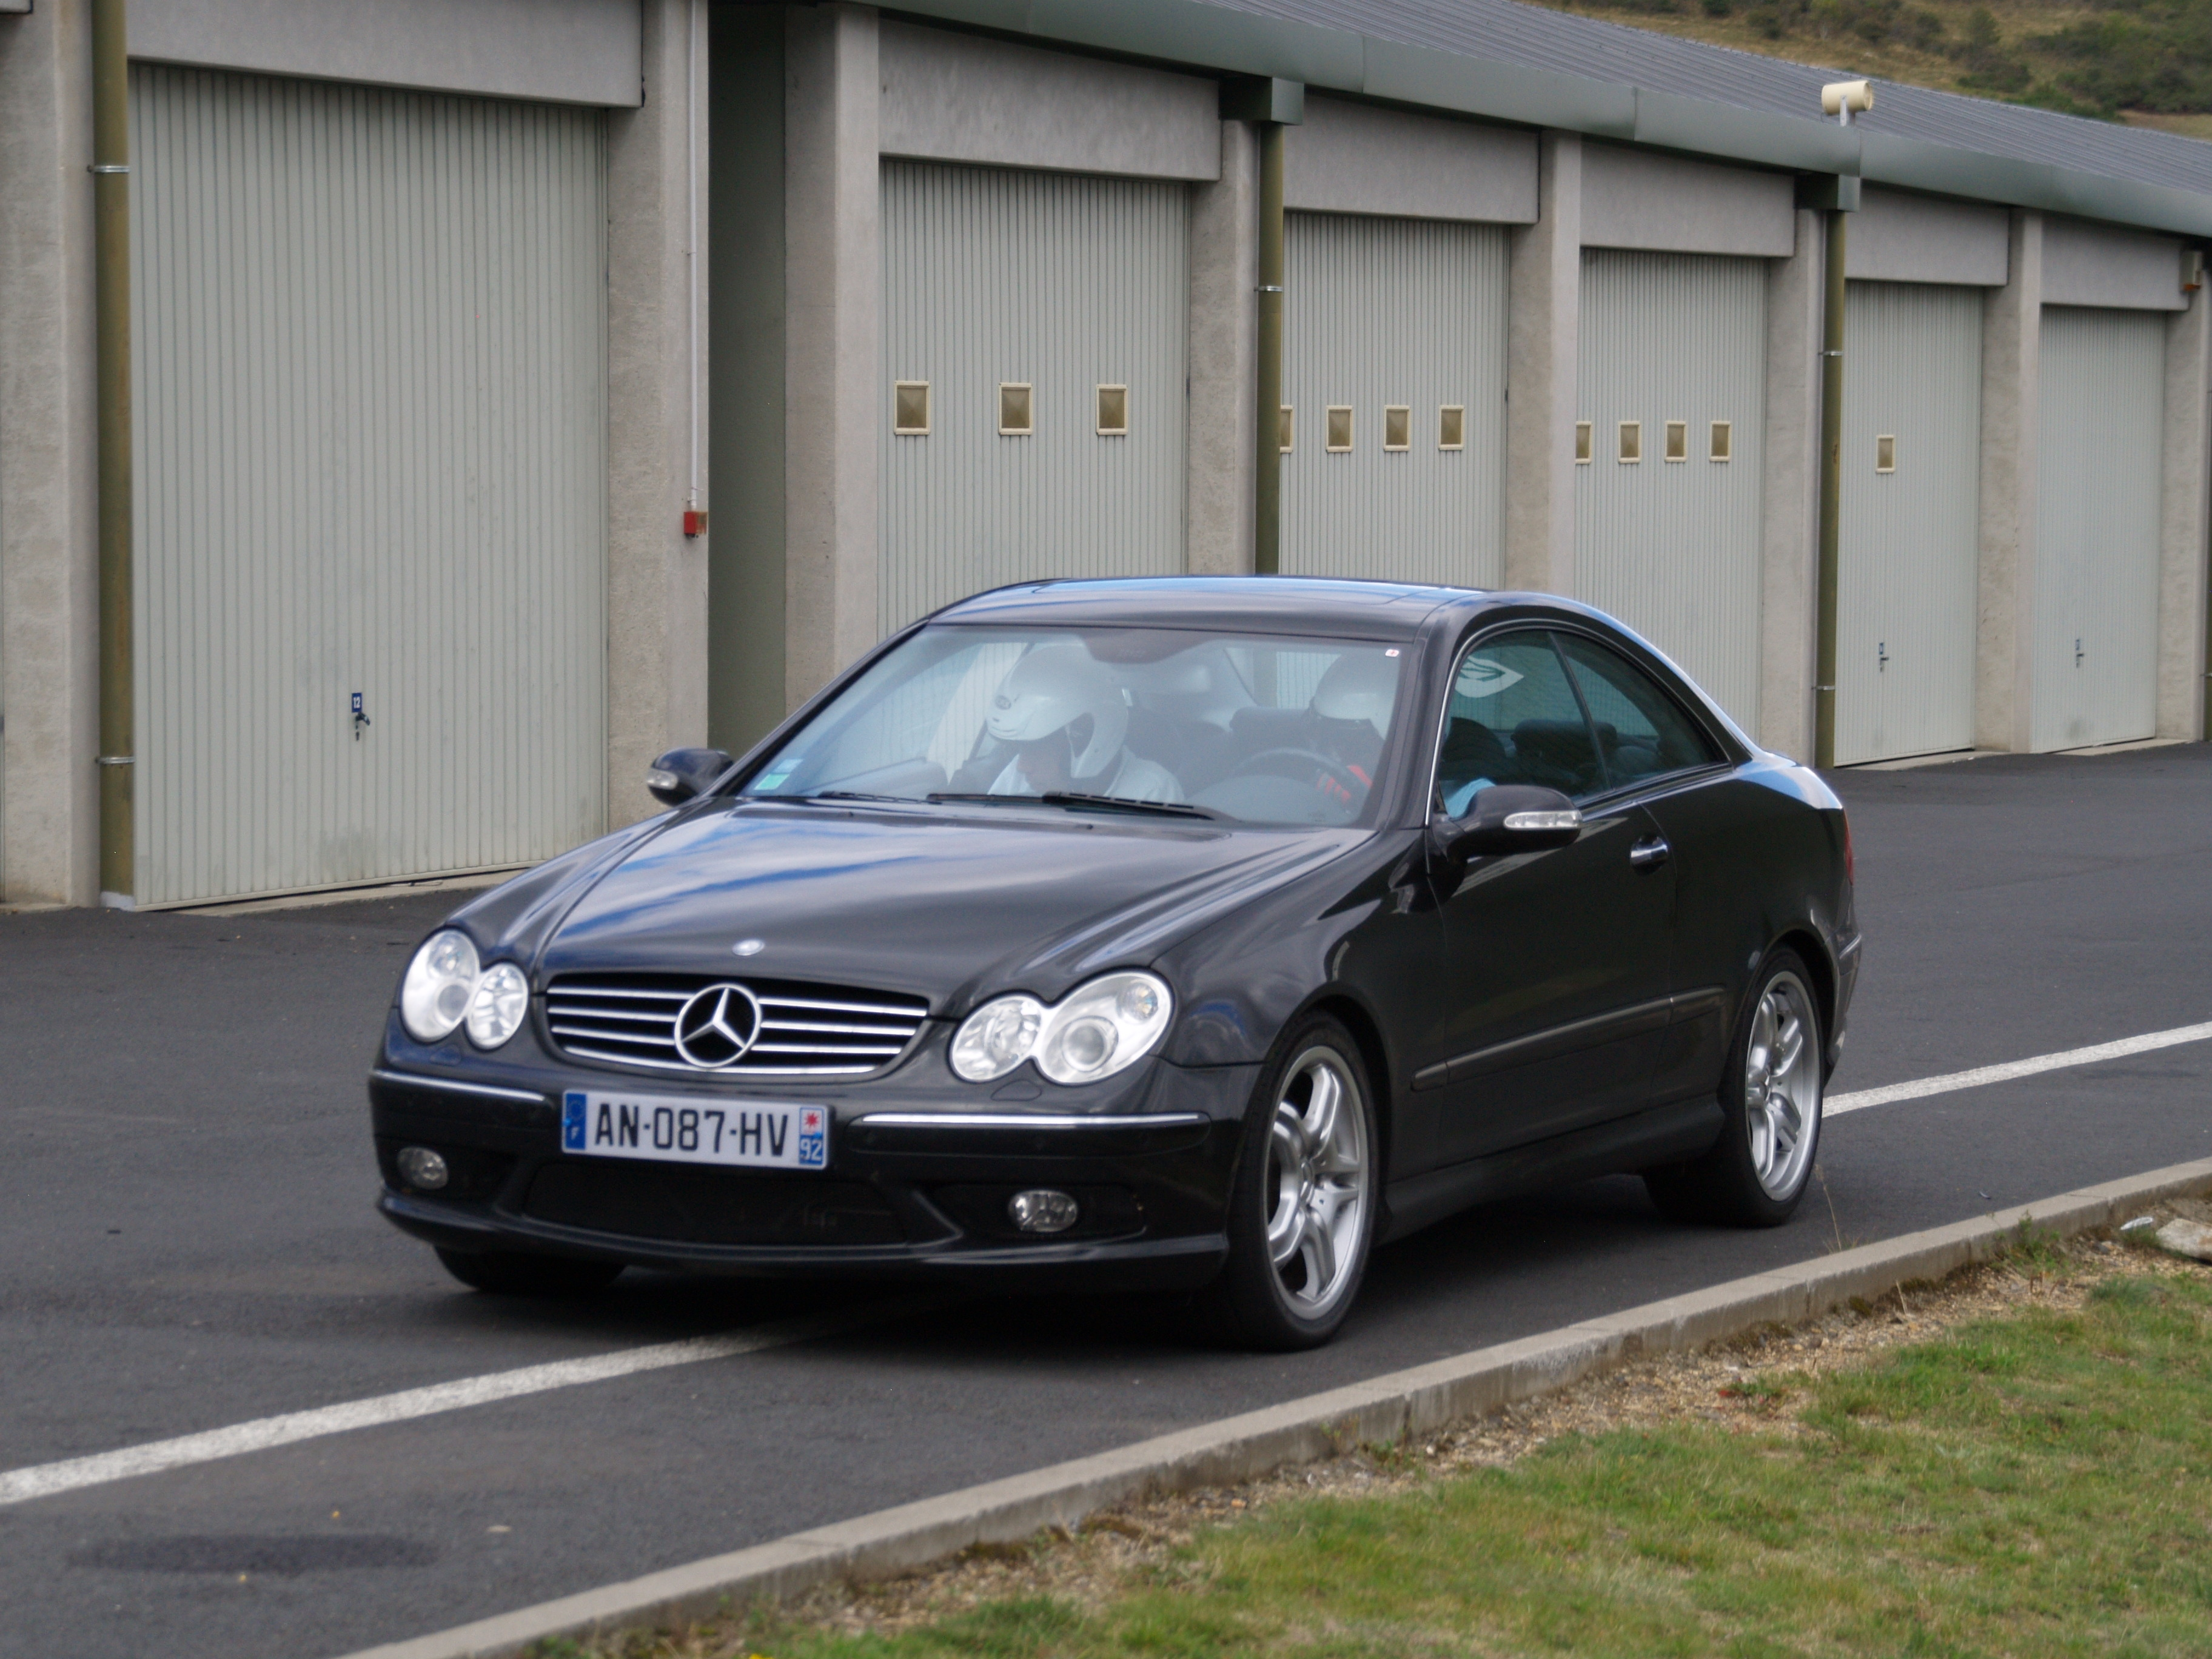 2005 mercedes benz clk55 amg images pictures and videos for Mercedes benz clk55 amg